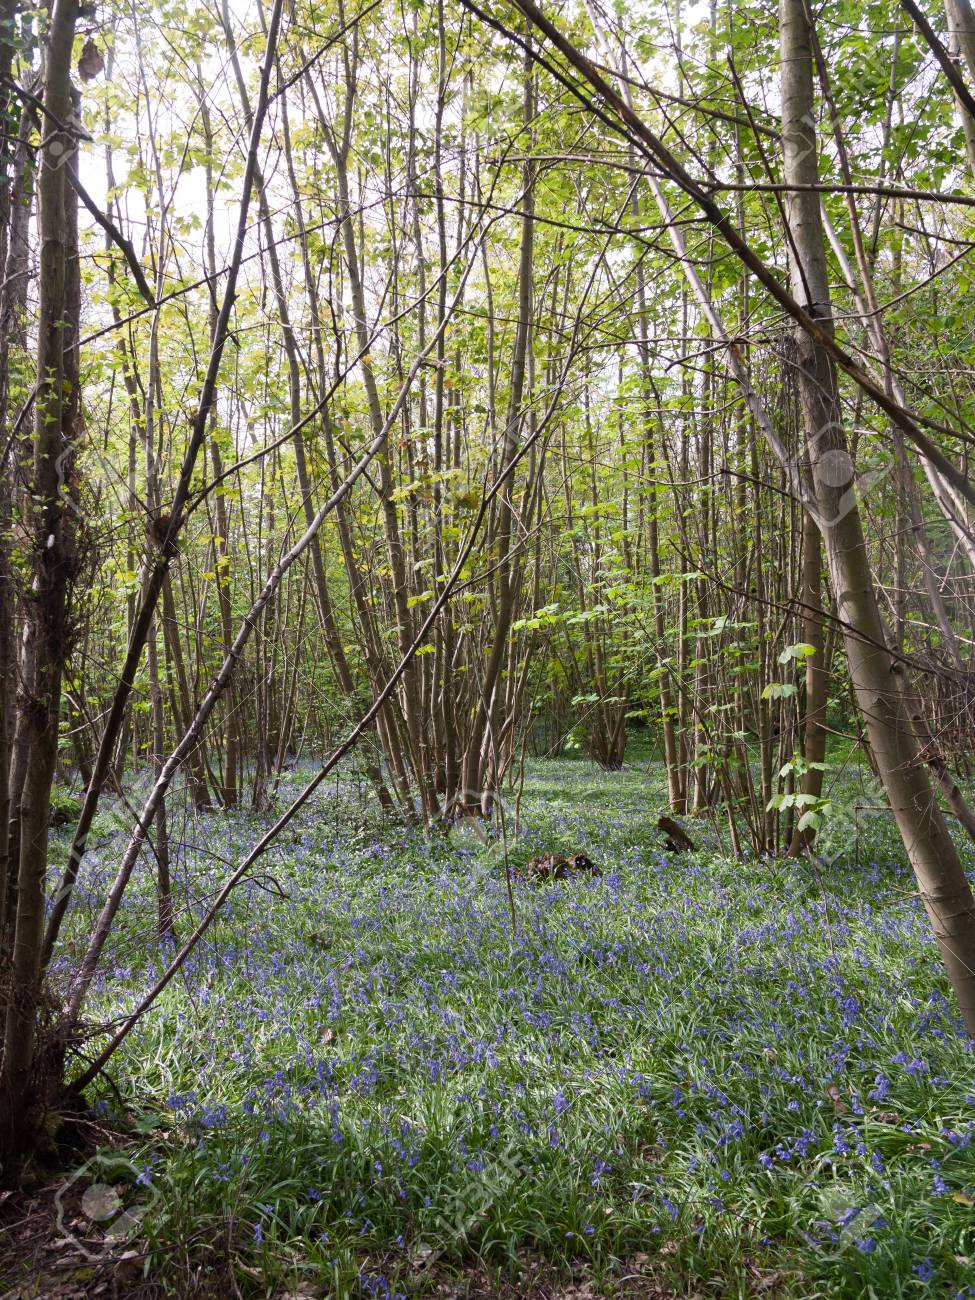 Inside Forest Woodland Spring With Blue Bells Flowers Across Stock